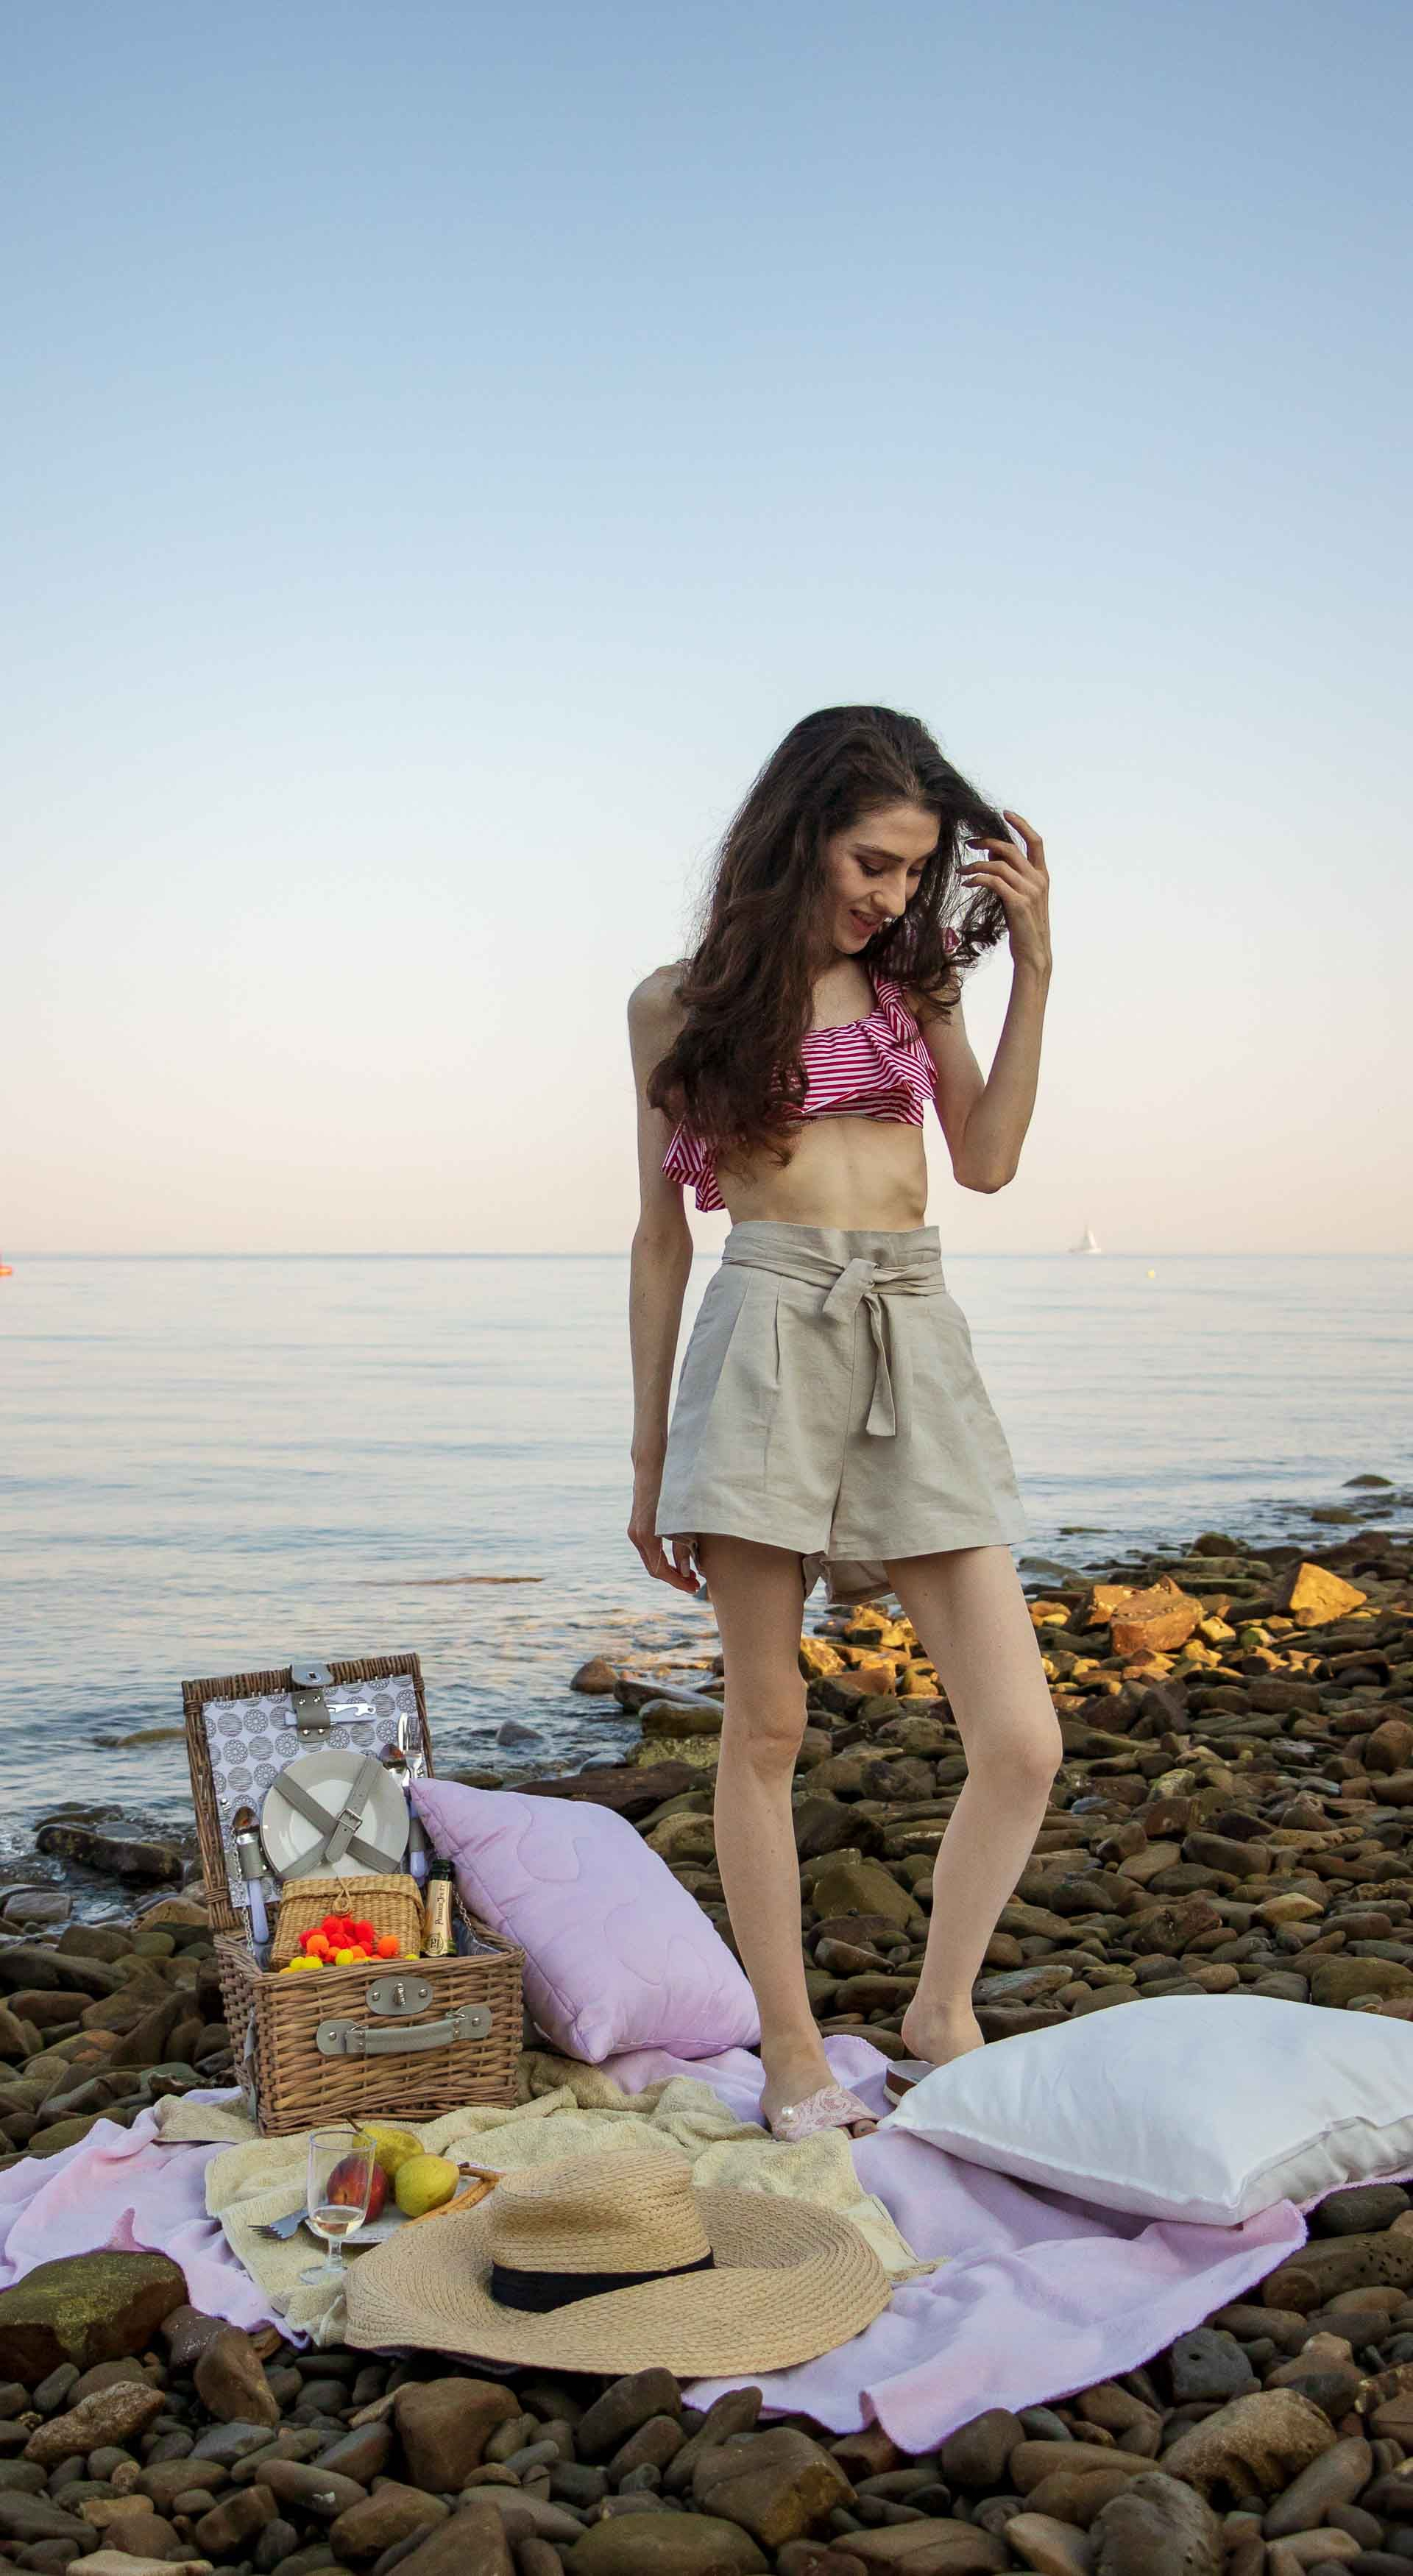 This Is What To Wear For A Beach Picnic Brunette From Wall Street Picnic Fashion Summer City Fashion Fashion